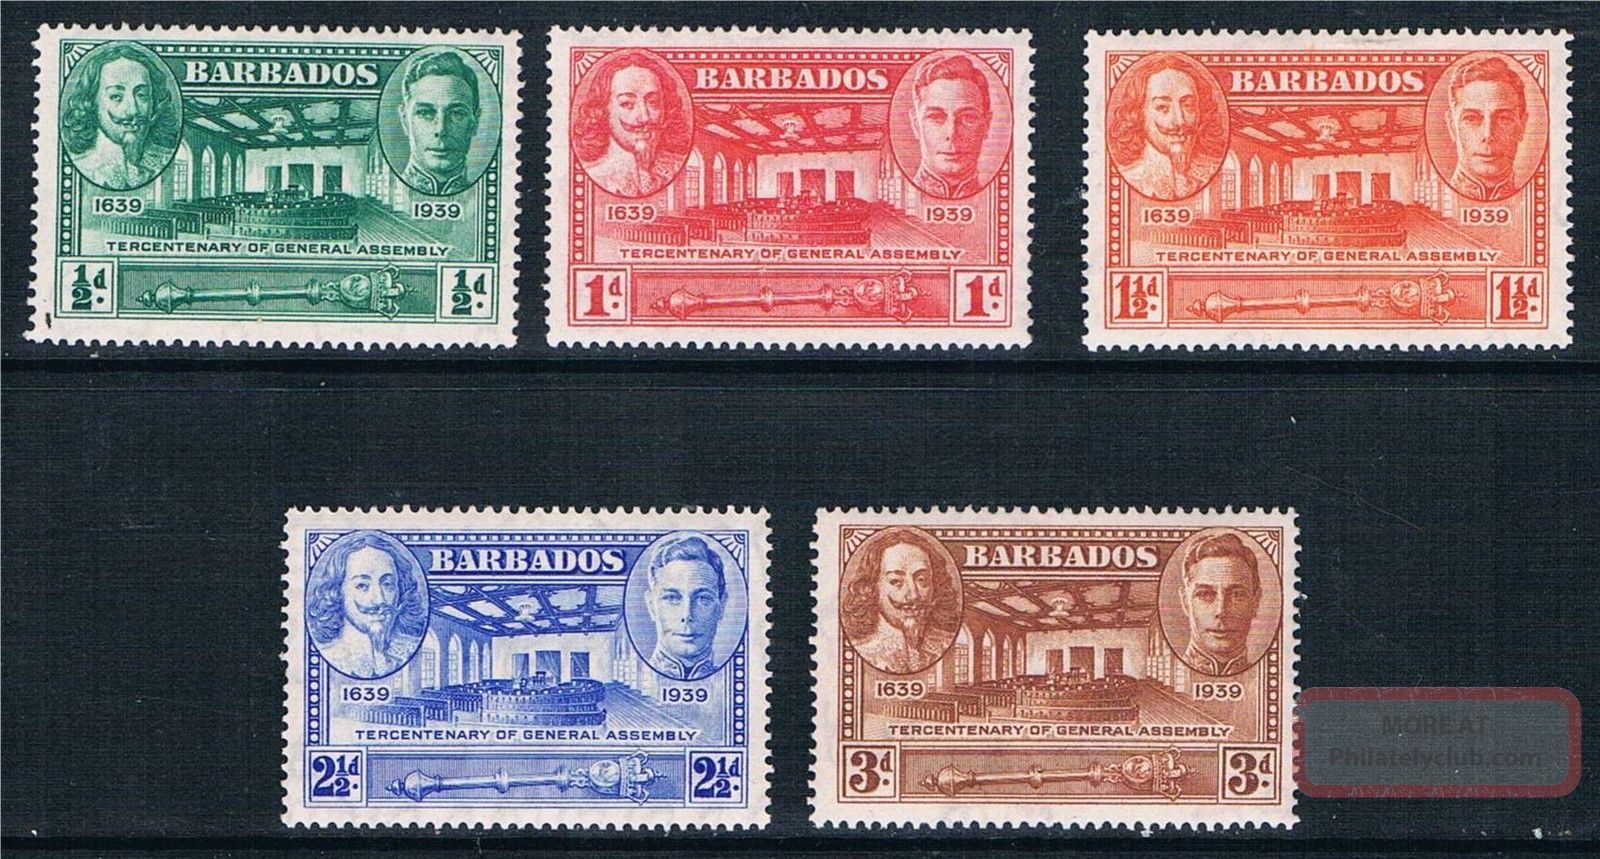 Barbados 1939 Ter.  Of General Assembly Sg 257/61 Mlh British Colonies & Territories photo